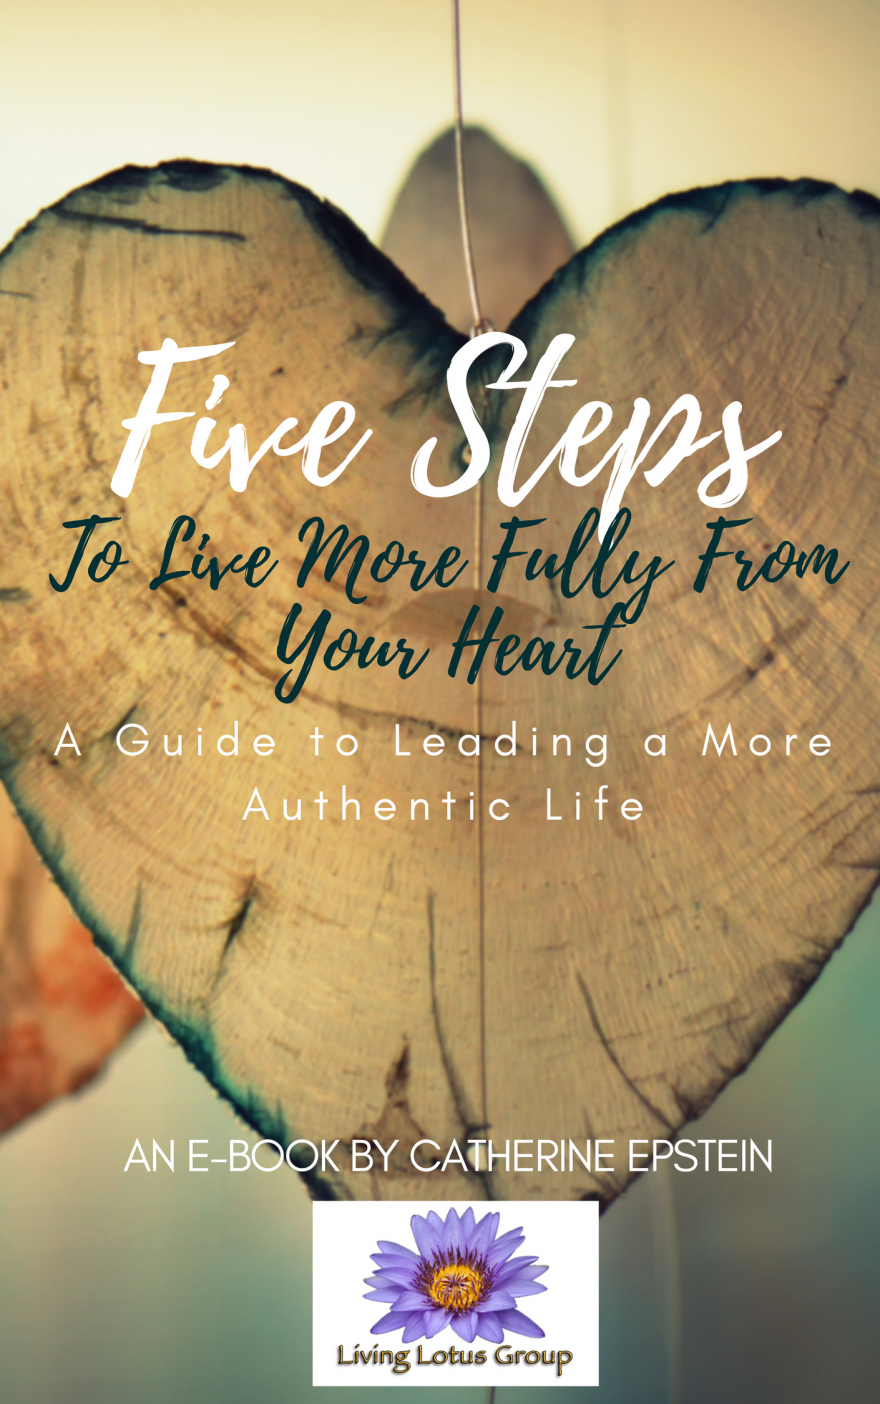 5 Steps to Live More Fully From the Heart